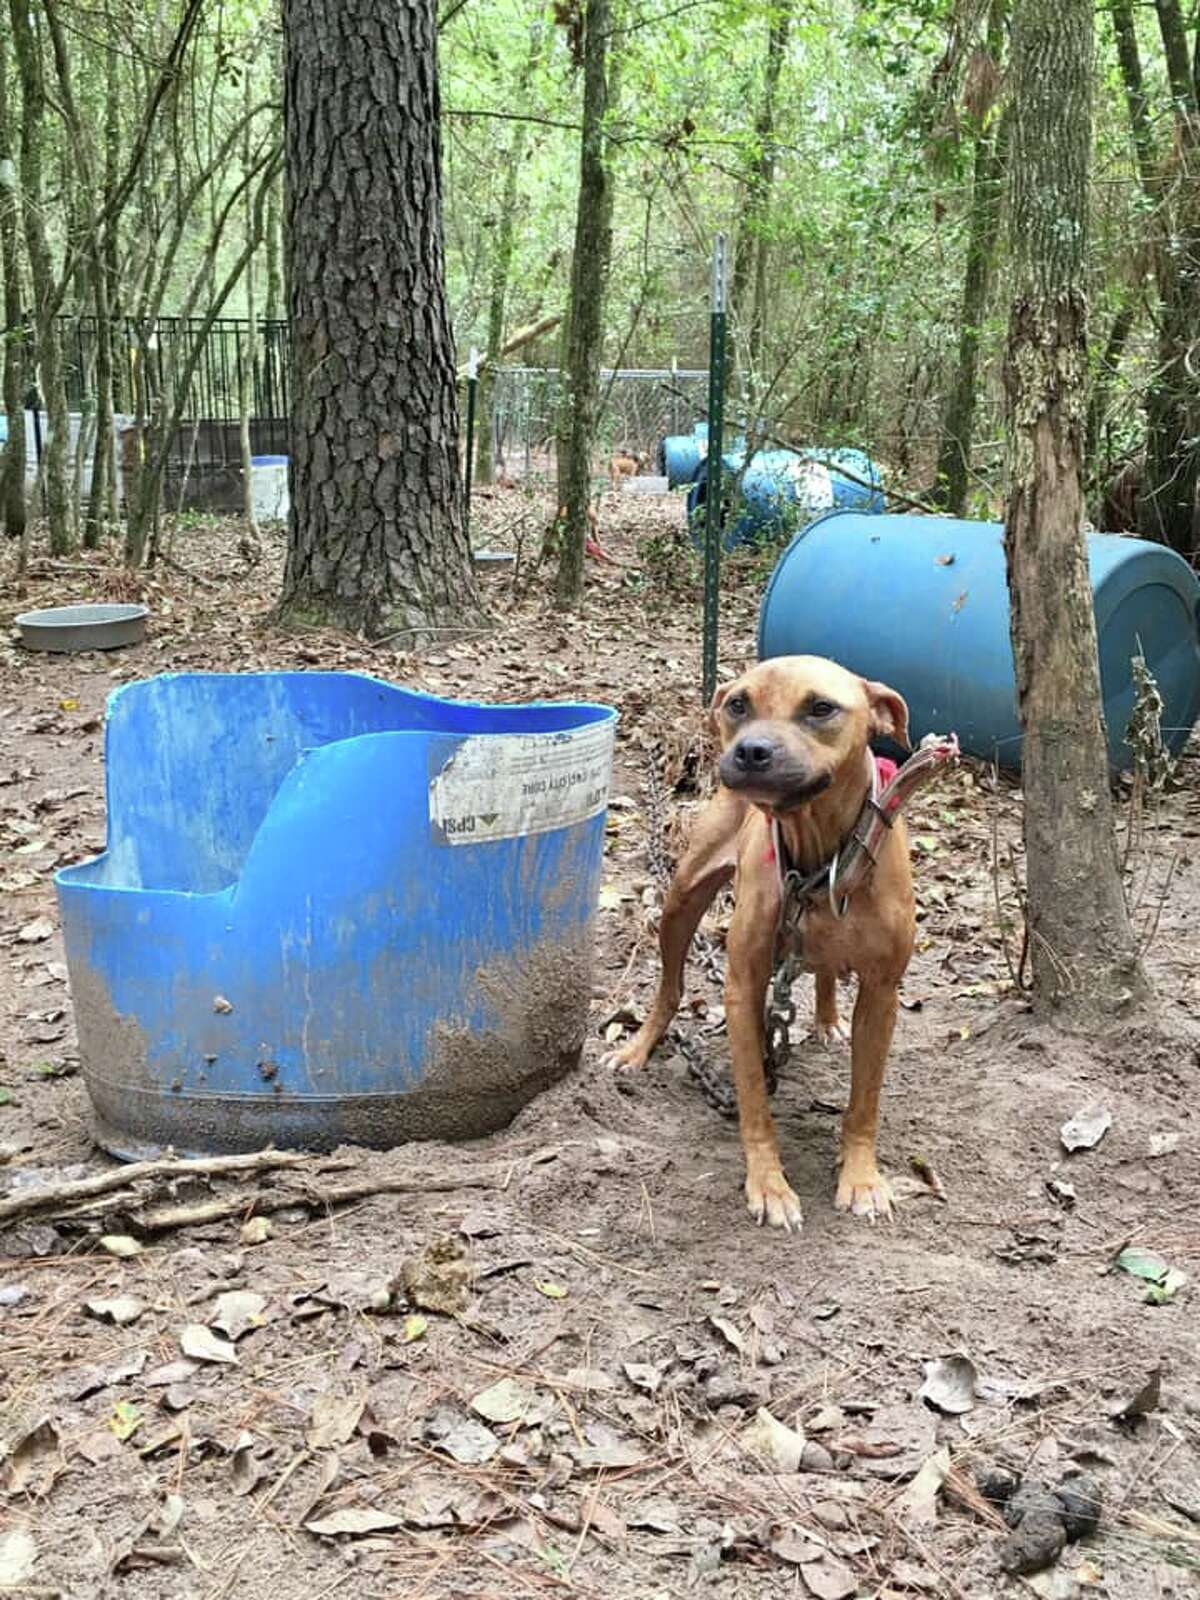 """Trash bins were found scattered among the site that rescuers said the dogs used for shelter. All of the dogs were malnourished with their rib cages visible and were """"infested with fleas and skin infections,"""" rescuers said."""